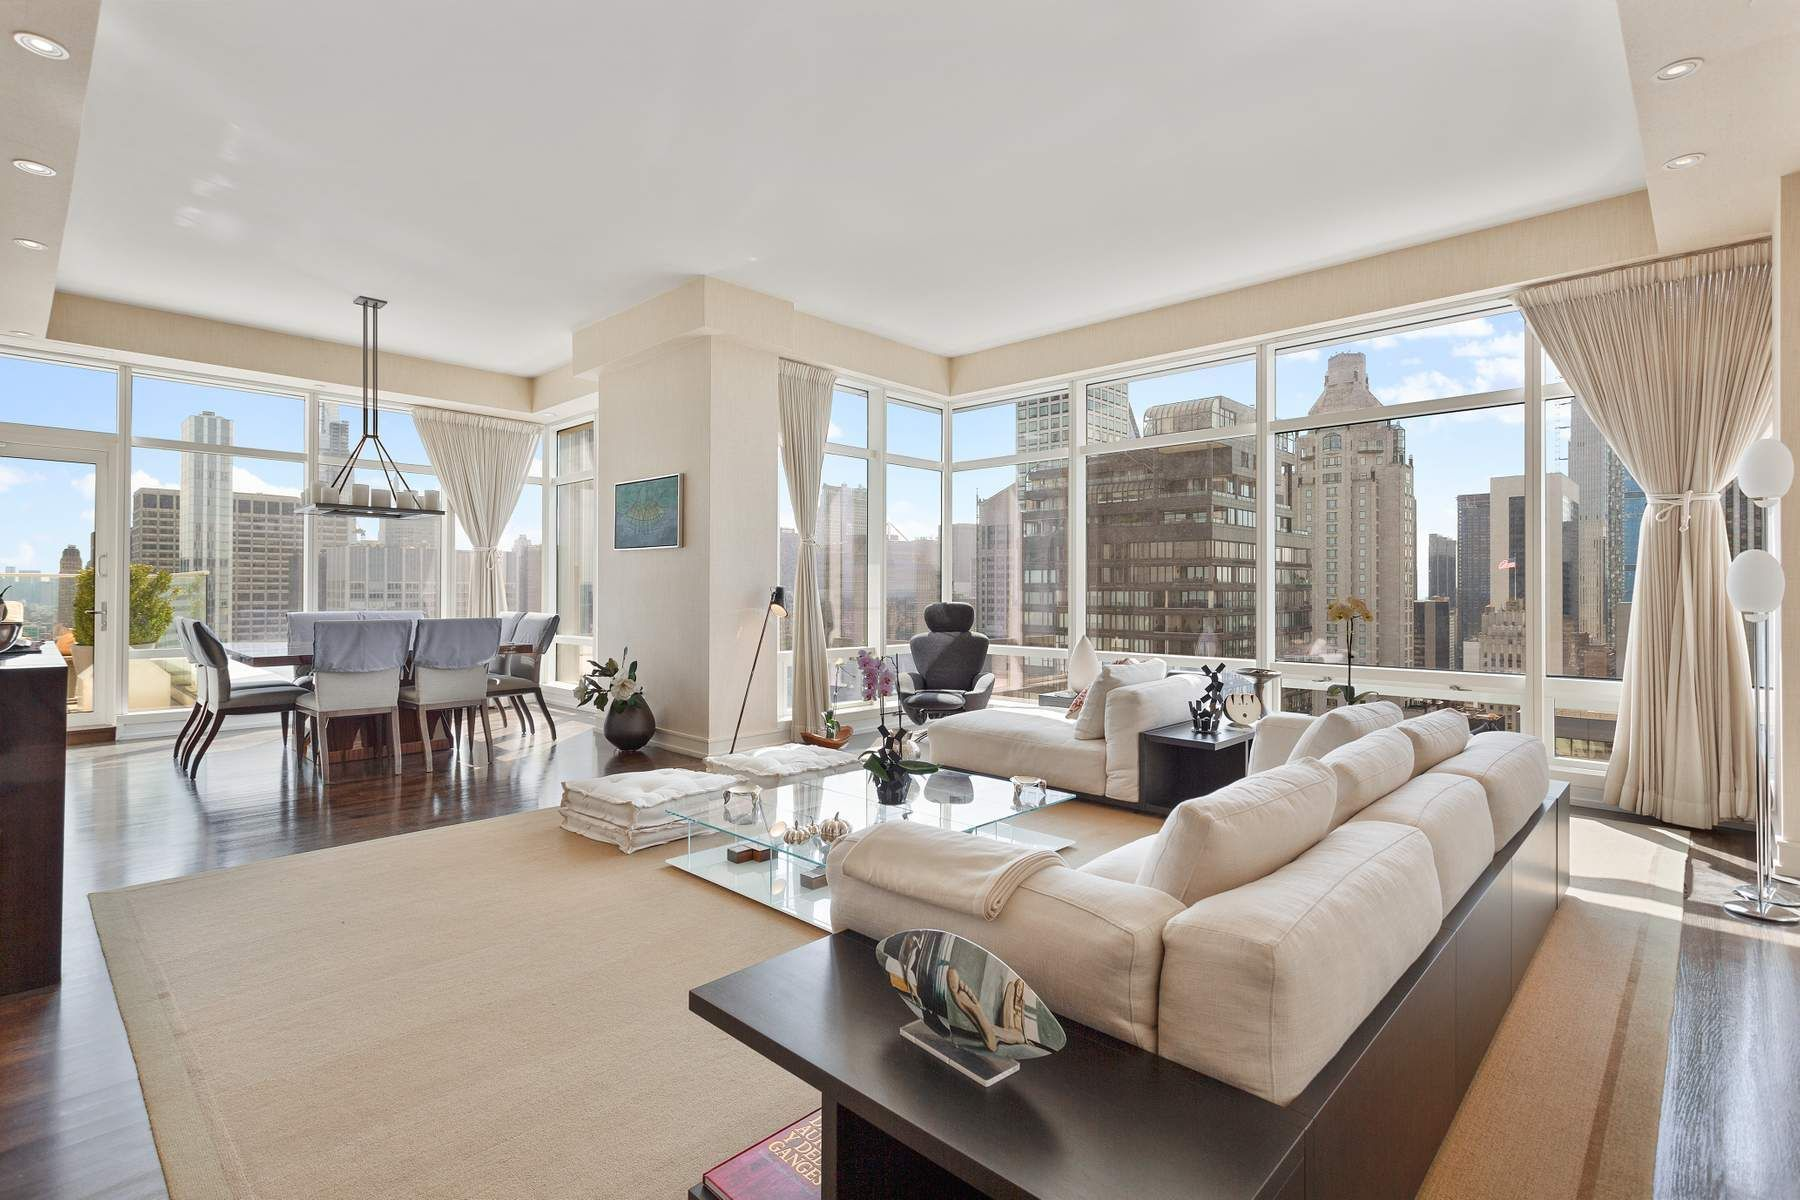 Amazing Terrace!!!! Views, Views and more Views!Picture yourself on this beautiful terrace, entertaining your friends or enjoying it by yourself, watching the endless and amazing iconic views of New York City.This luxurious apartment has it all: move in condition, 658 sqft terrace, West and Southern panoramic open views, 11 foot ceilings (except gallery to accommodate ceiling lights), floor to ceiling windows , 2 entrances to the terrace, hardwood and marble floors, CAC,  washer/dryer  and chef's eat-in-kitchen.Enter this home through a 658 sqft gallery leading to a very spacious and perfectly proportioned corner living room  and dining room  with a door leading  to the grand terraceThe large master bedroom has  access to the terrace,  ample closets , an en-suite marble master bathroom with double sinks, soaking tub and separate shower The large 2nd bedroom has en-suite bath The 3rd bedroom ( was converted into an office/den (closet became a bar)The apartment has 3 full baths and a powder roomThe exquisite Poggenpohl Kitchen has state of the art appliances iby Wolf, Sub-Zero and Miele, including, wine cooler. Central air conditioning and heating are separately zoned through the apartment .The apartment can be rented furnished or unfurnished .Built in 2005 , the Beacon Court is famous for its incredibly beautiful lobby, the quality of the Services including Concierge , 24hr Doorman and Valet Parking, an Elliptical Drive-in Courtyard, and on the 29th floor, a fully equipped Fitness Room, a Barre Exercise Room, a Private Lounge, a Business Center, Children's Playroom and Kitchen.